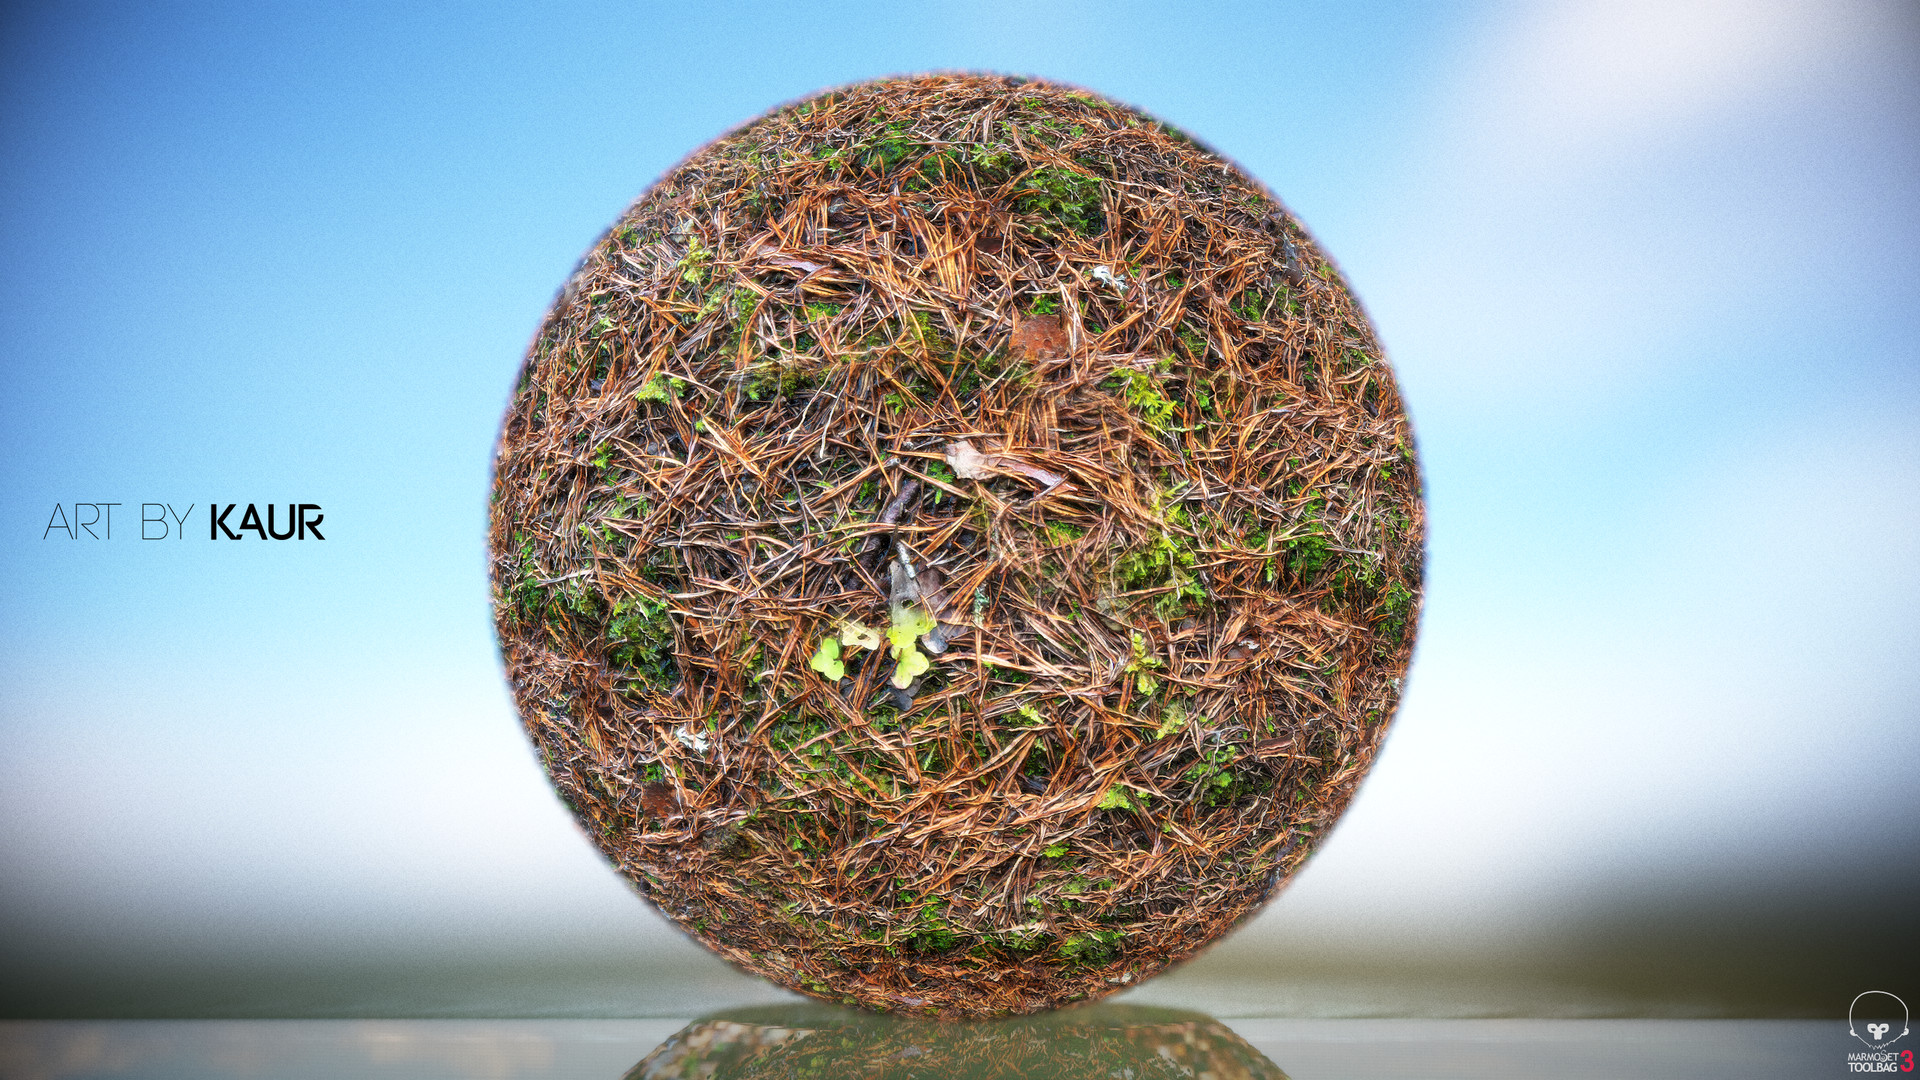 Photoscanned ground texture - Ground with Moss & Pine needles